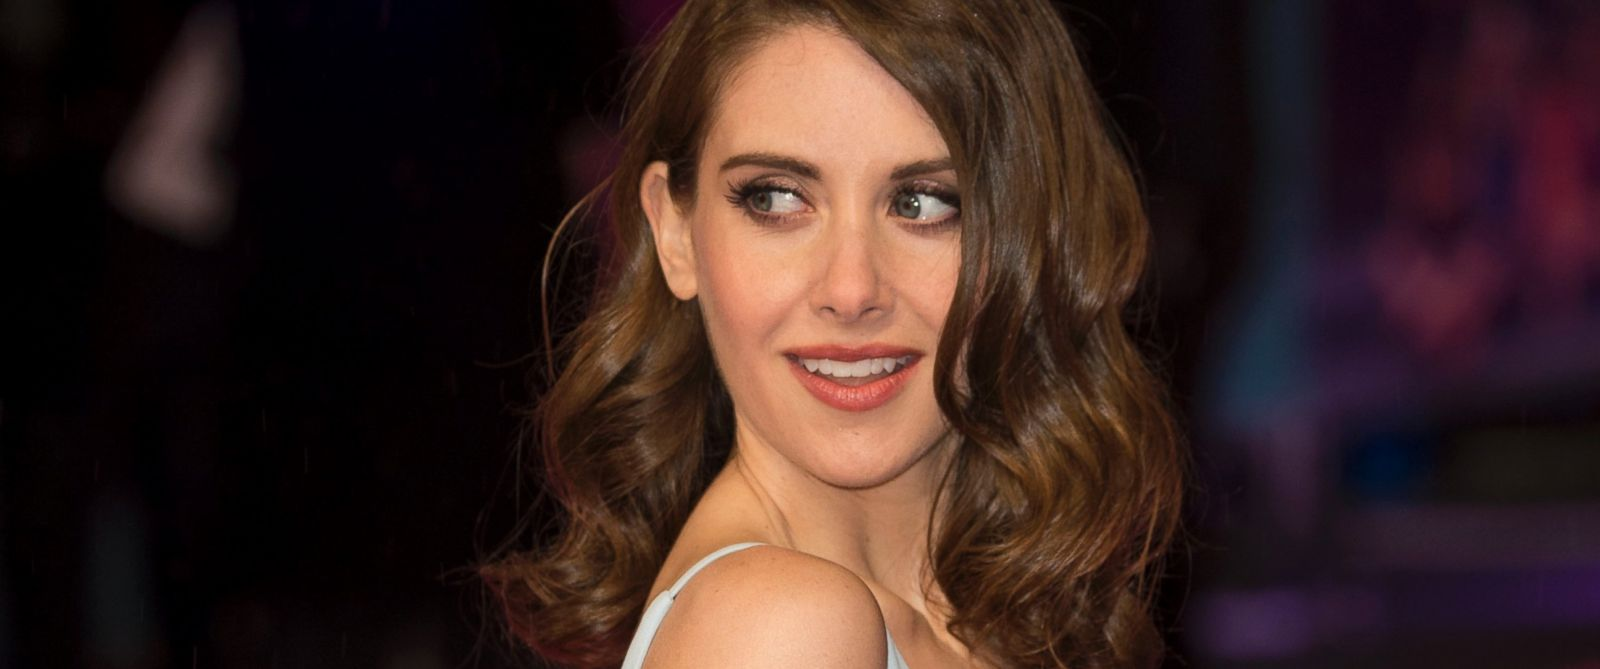 PHOTO: Alison Brie attends the European Premiere of How To Be Single on Feb. 9, 2016 in London.